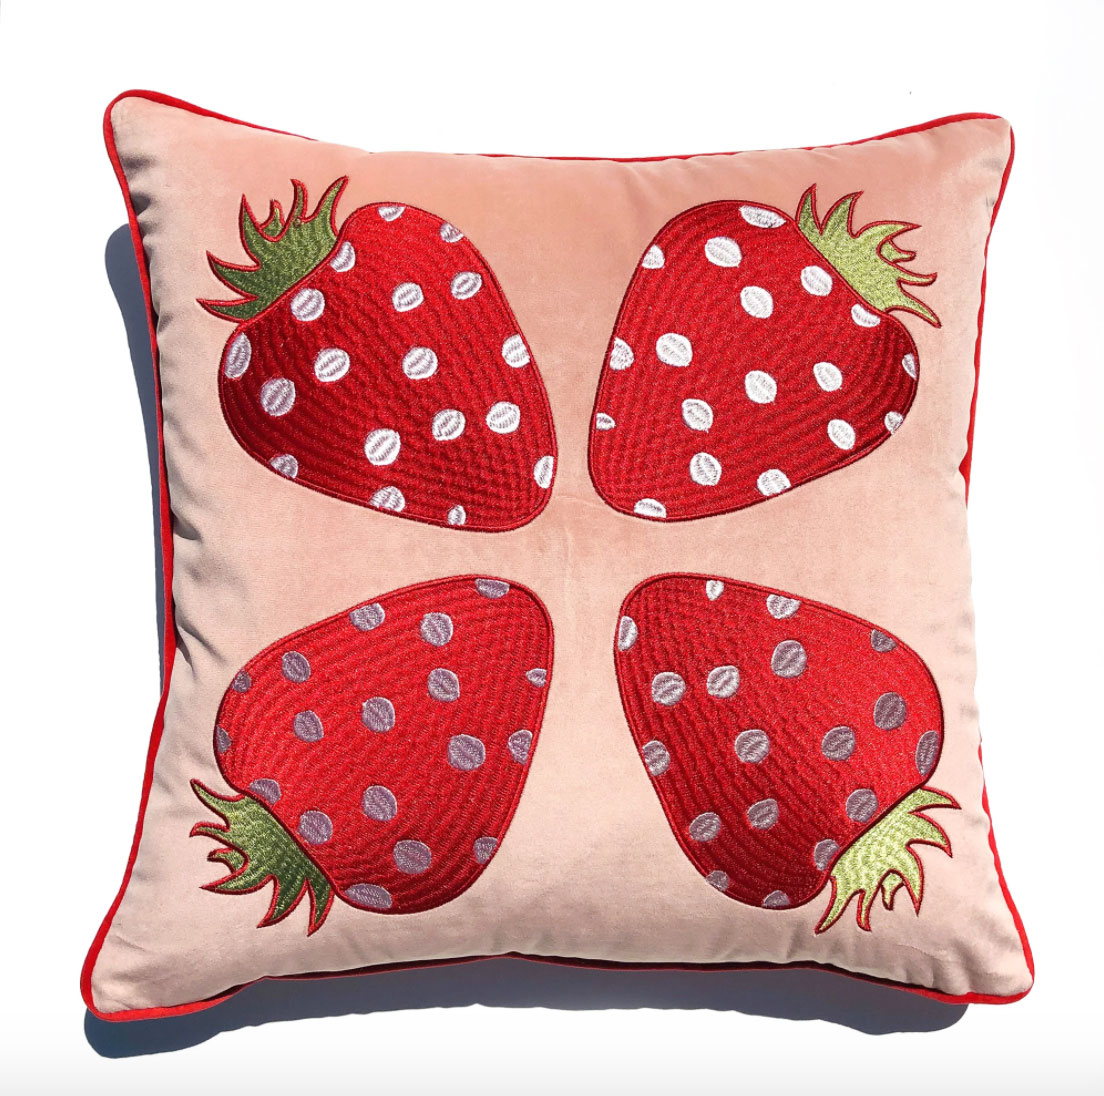 Centinelle Strawberry Pillow